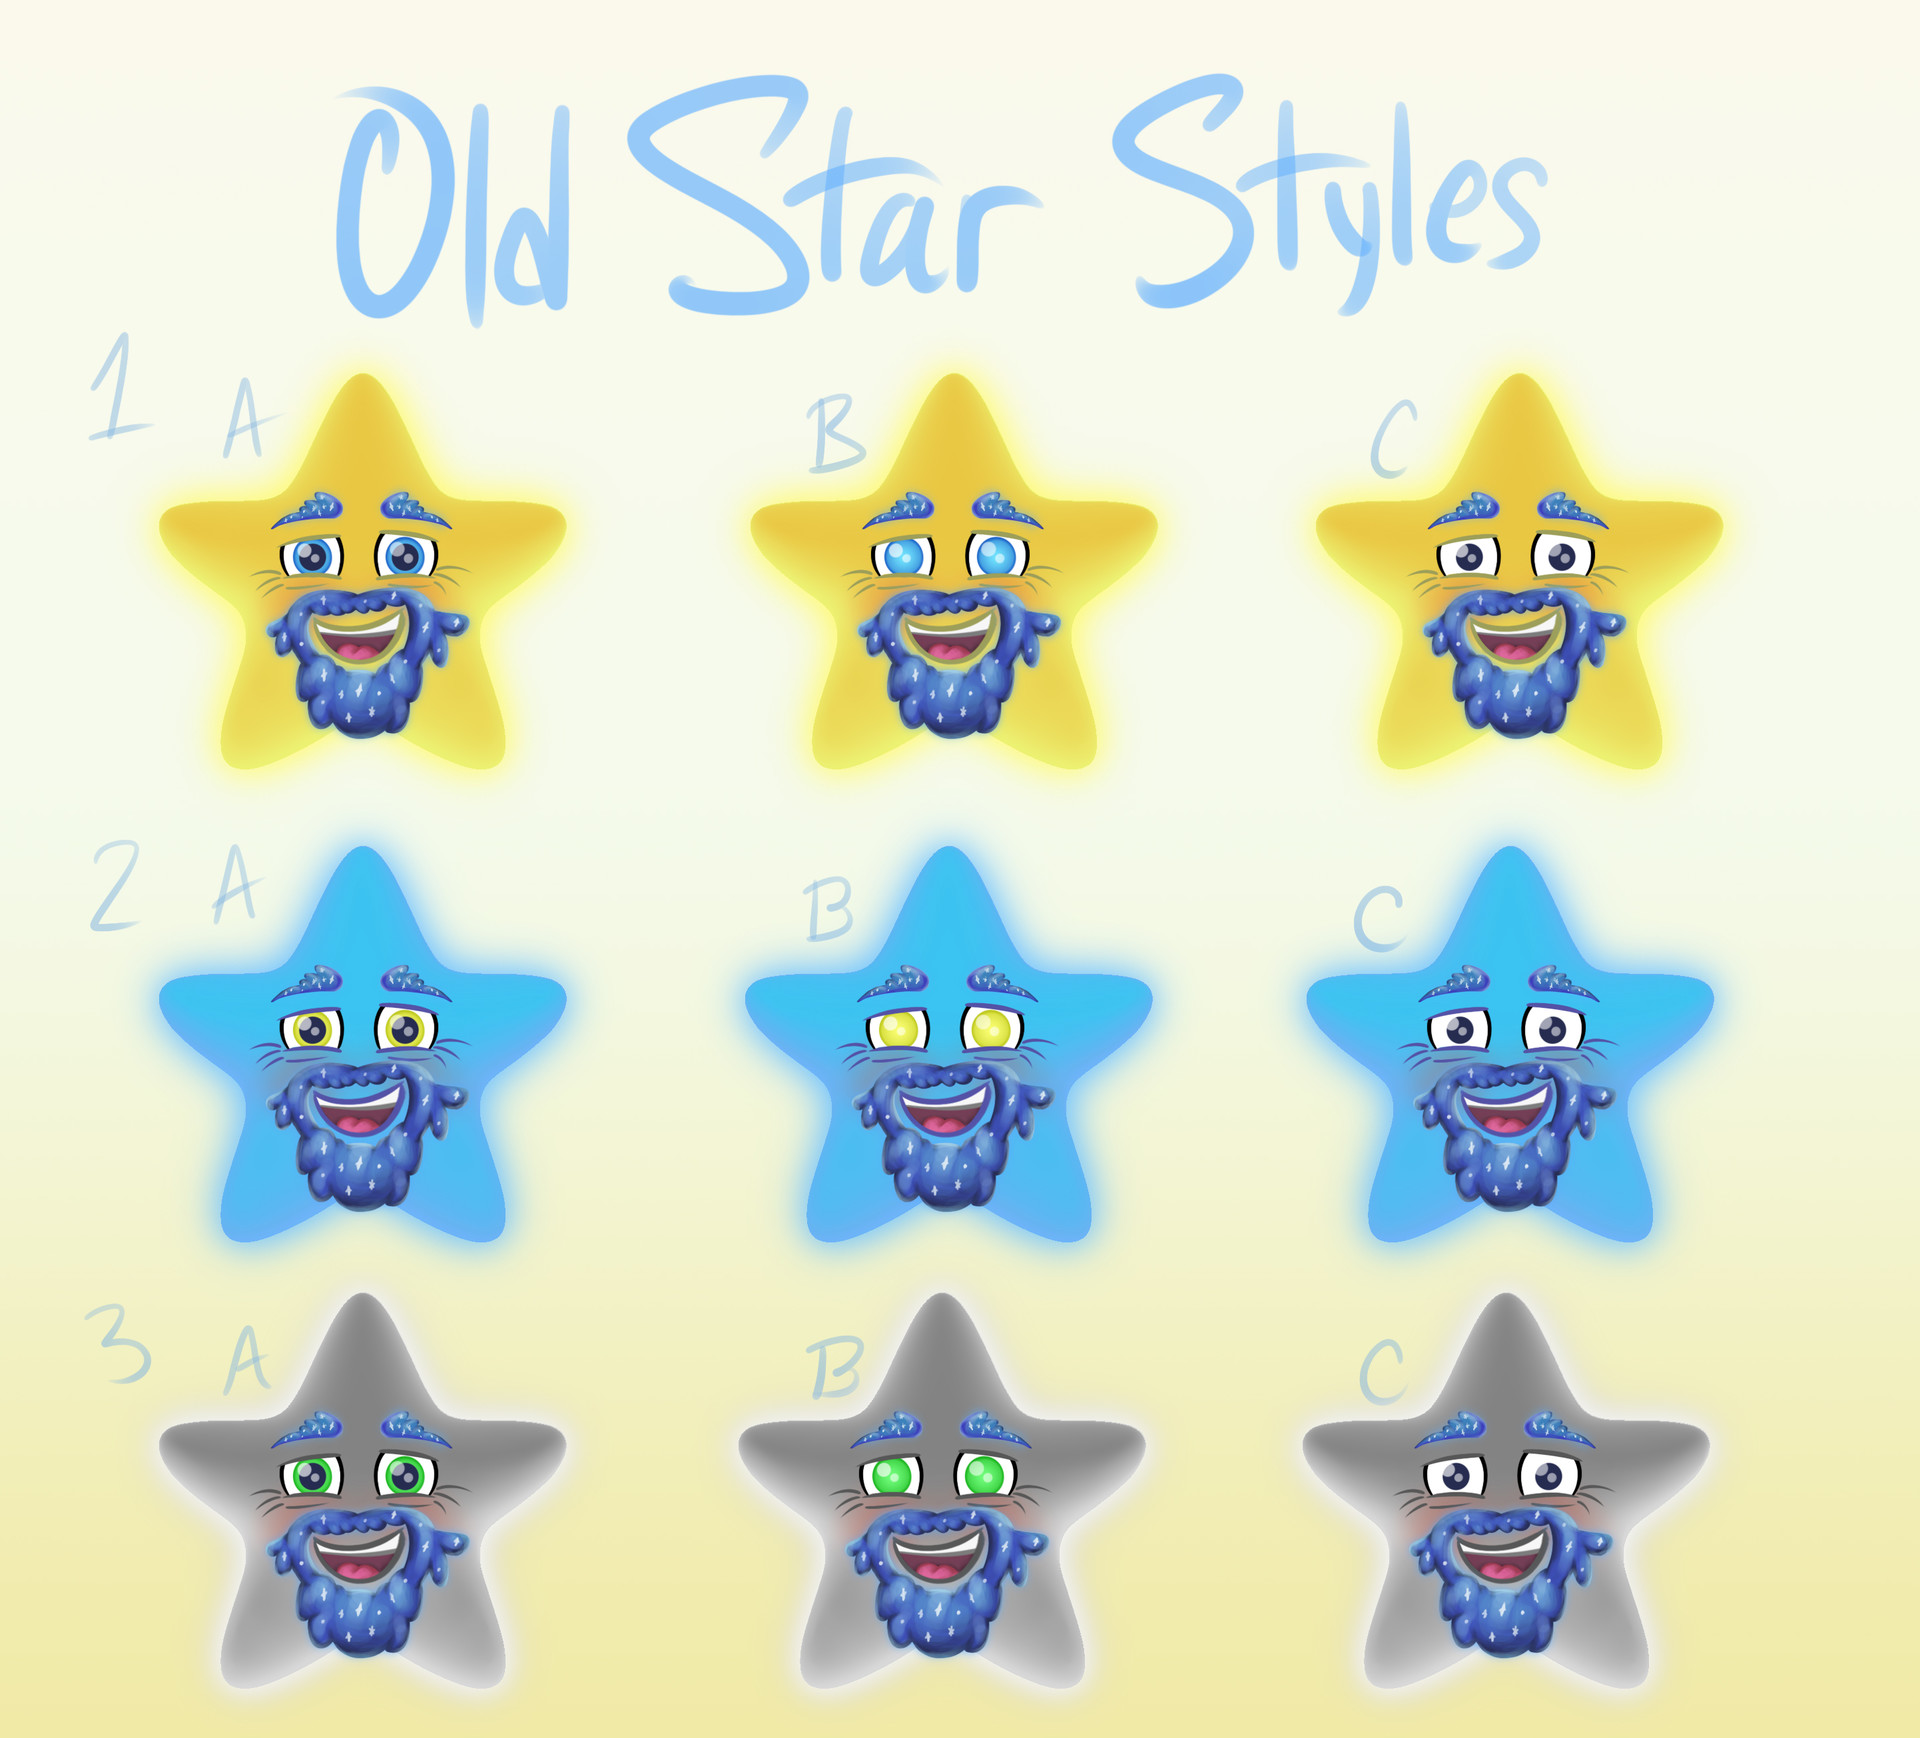 Early concepts for Old Star